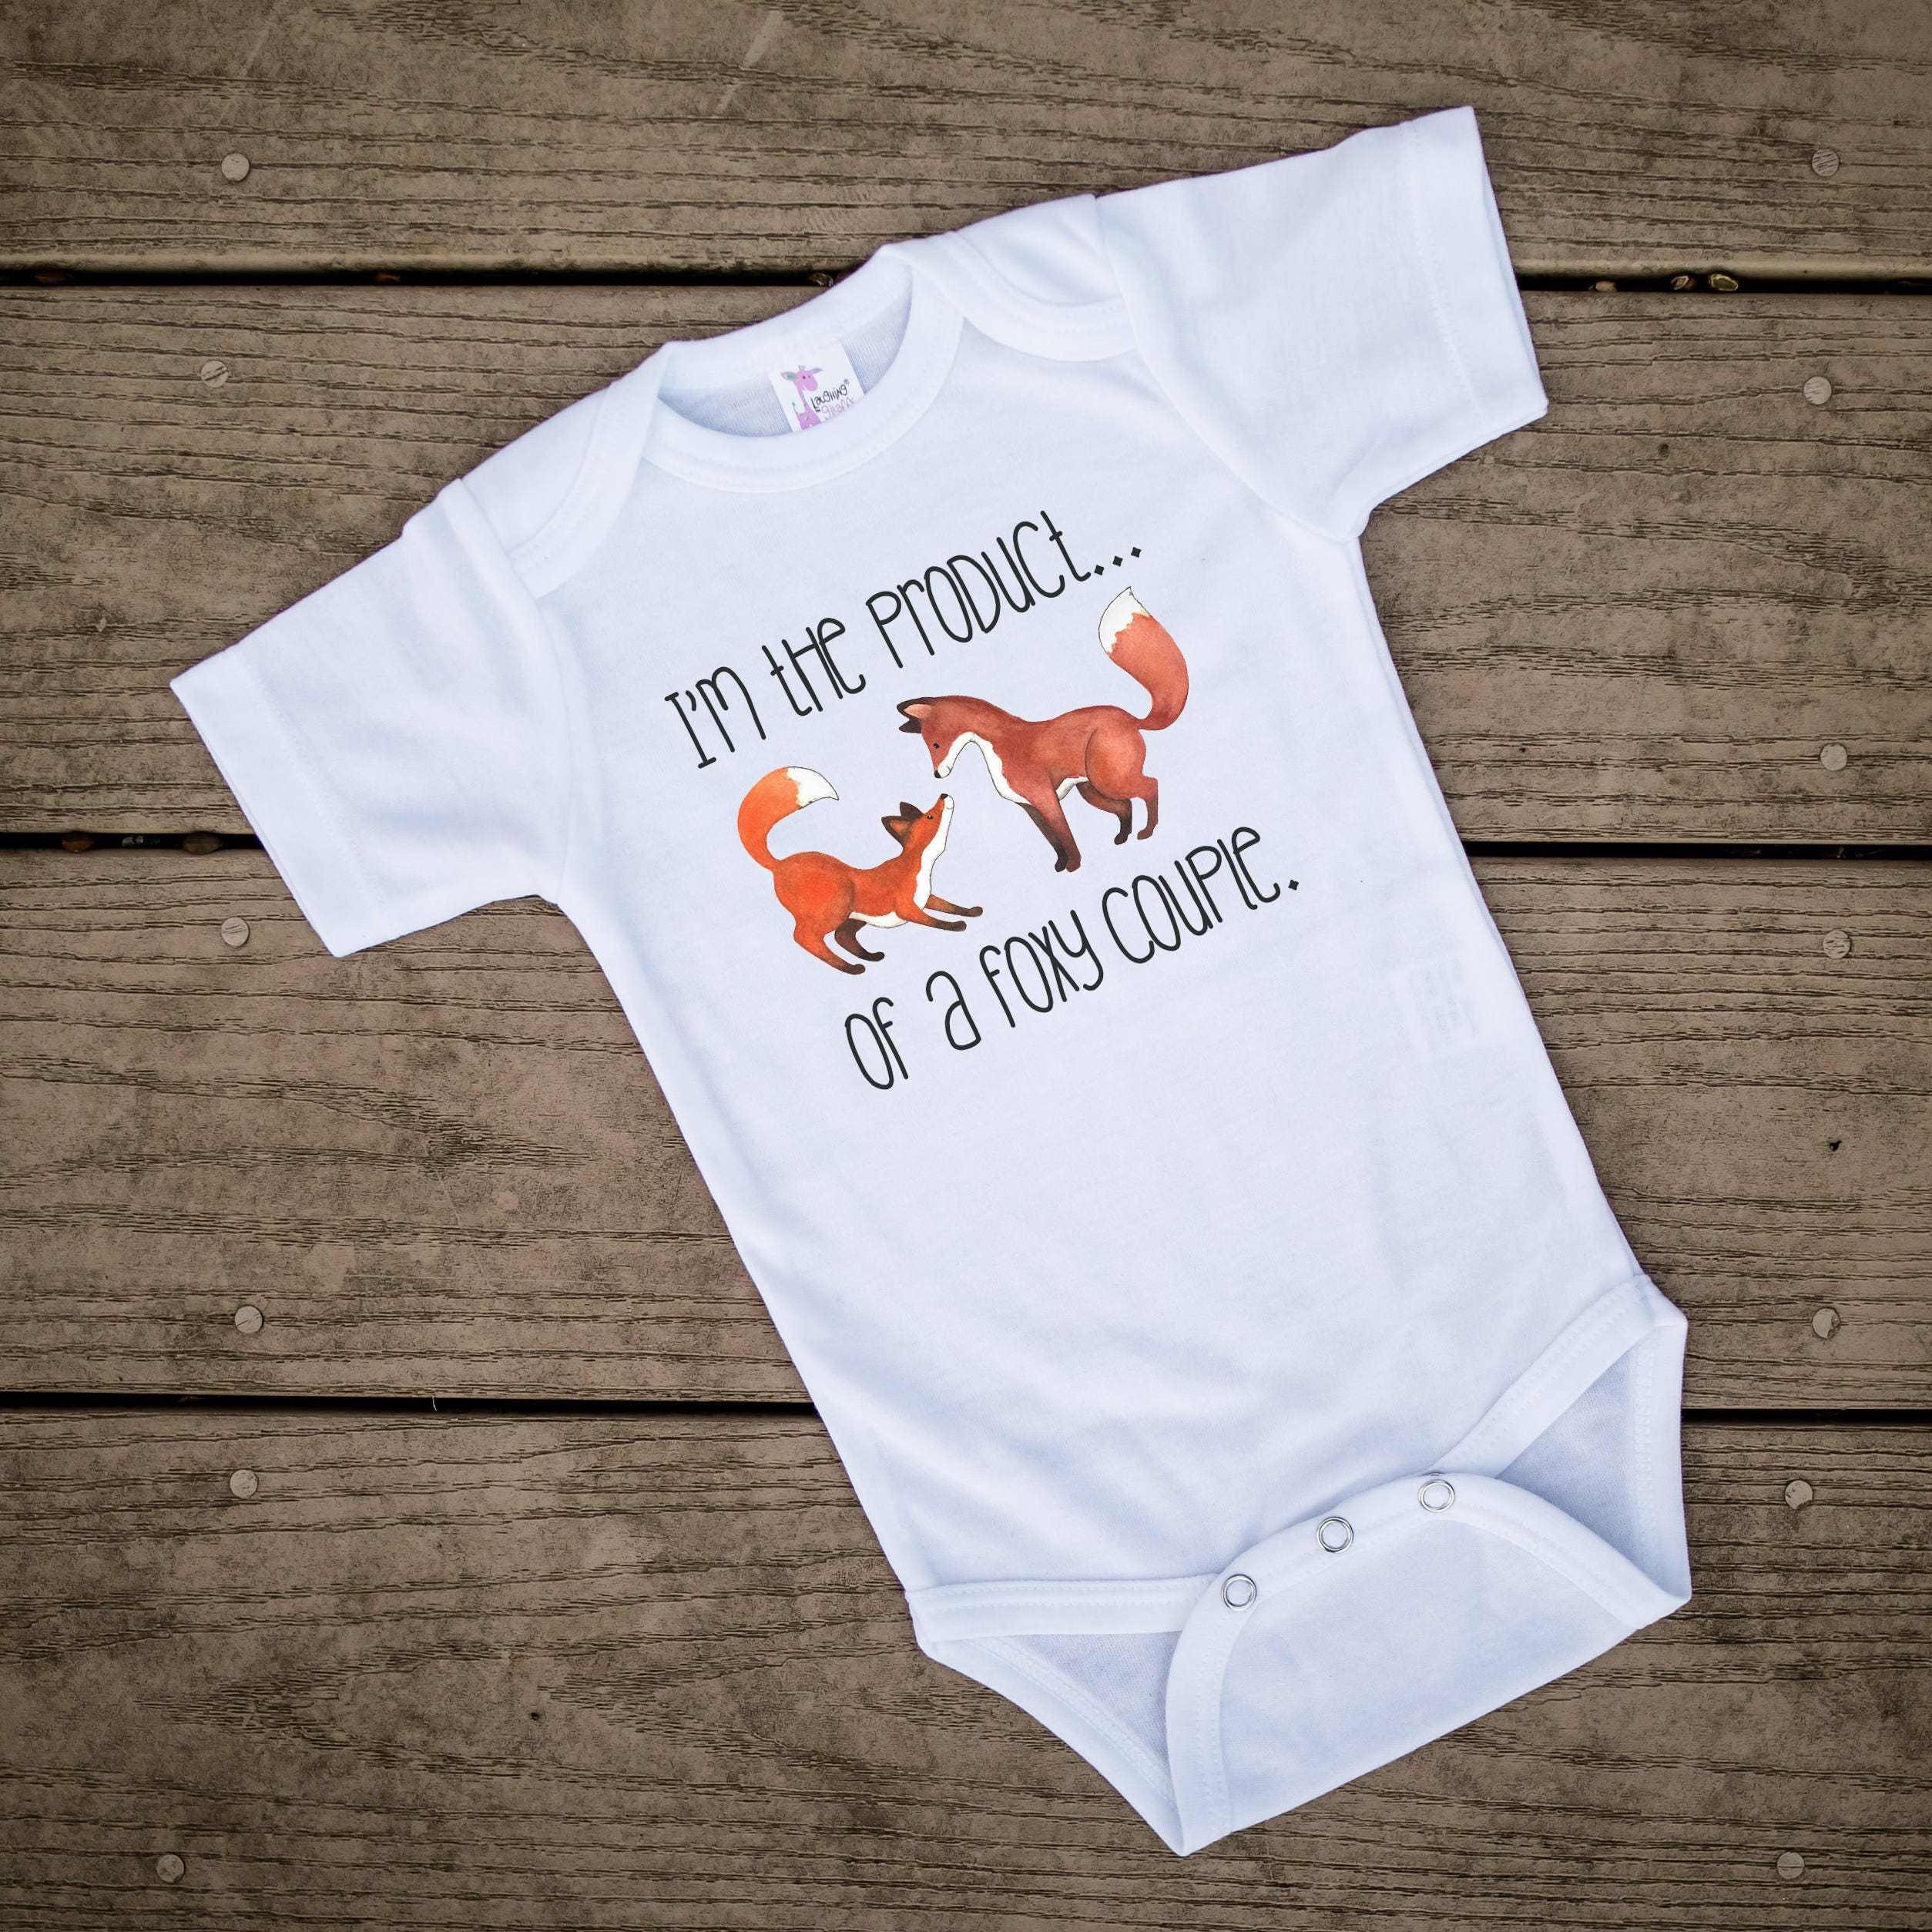 Fox baby clothing Cute Baby clothes Funny Baby clothes